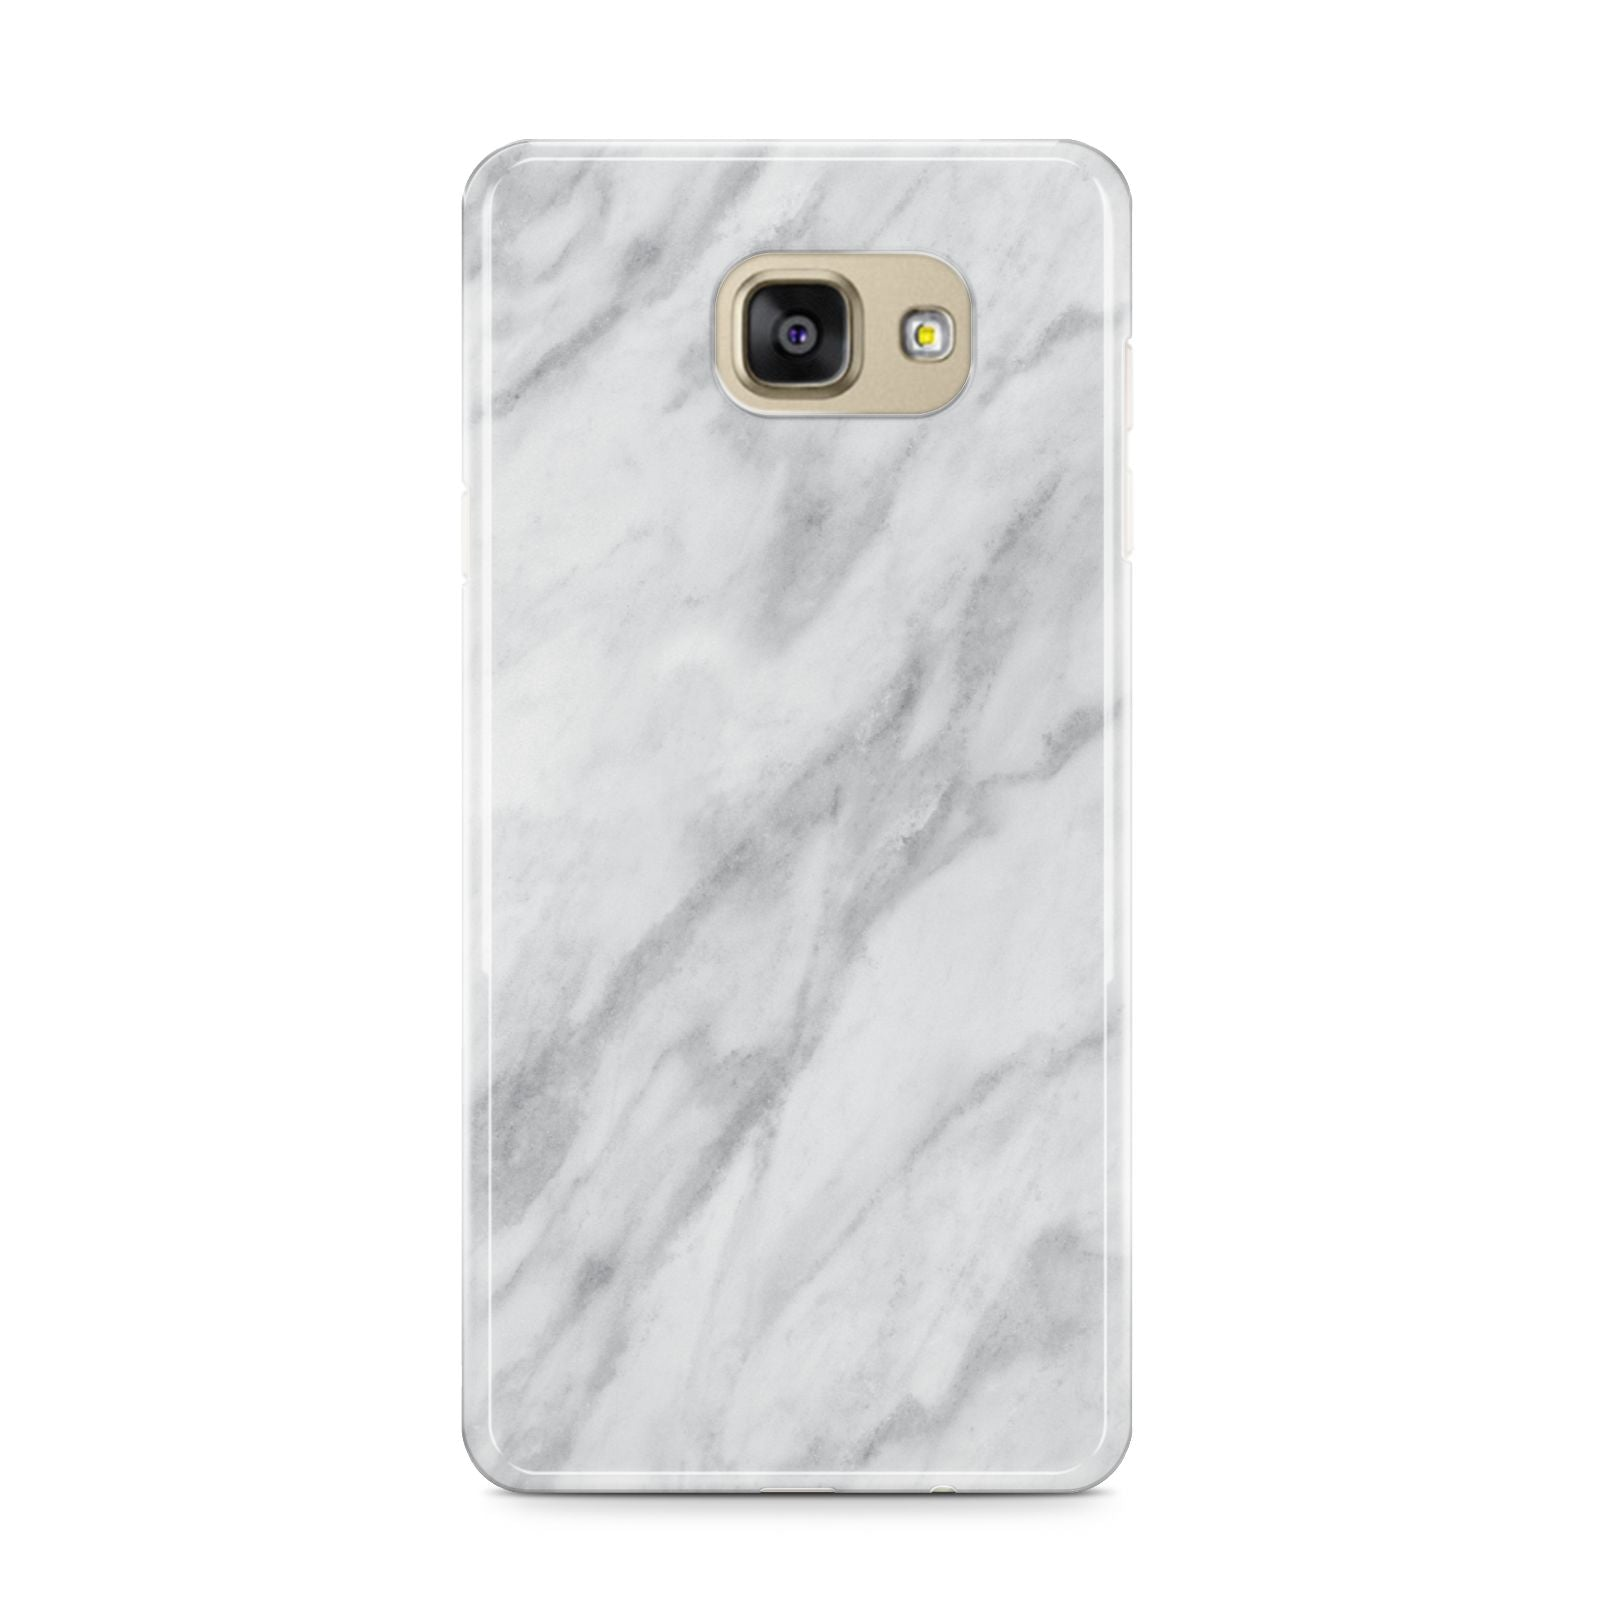 Faux Marble Effect Italian Samsung Galaxy A9 2016 Case on gold phone